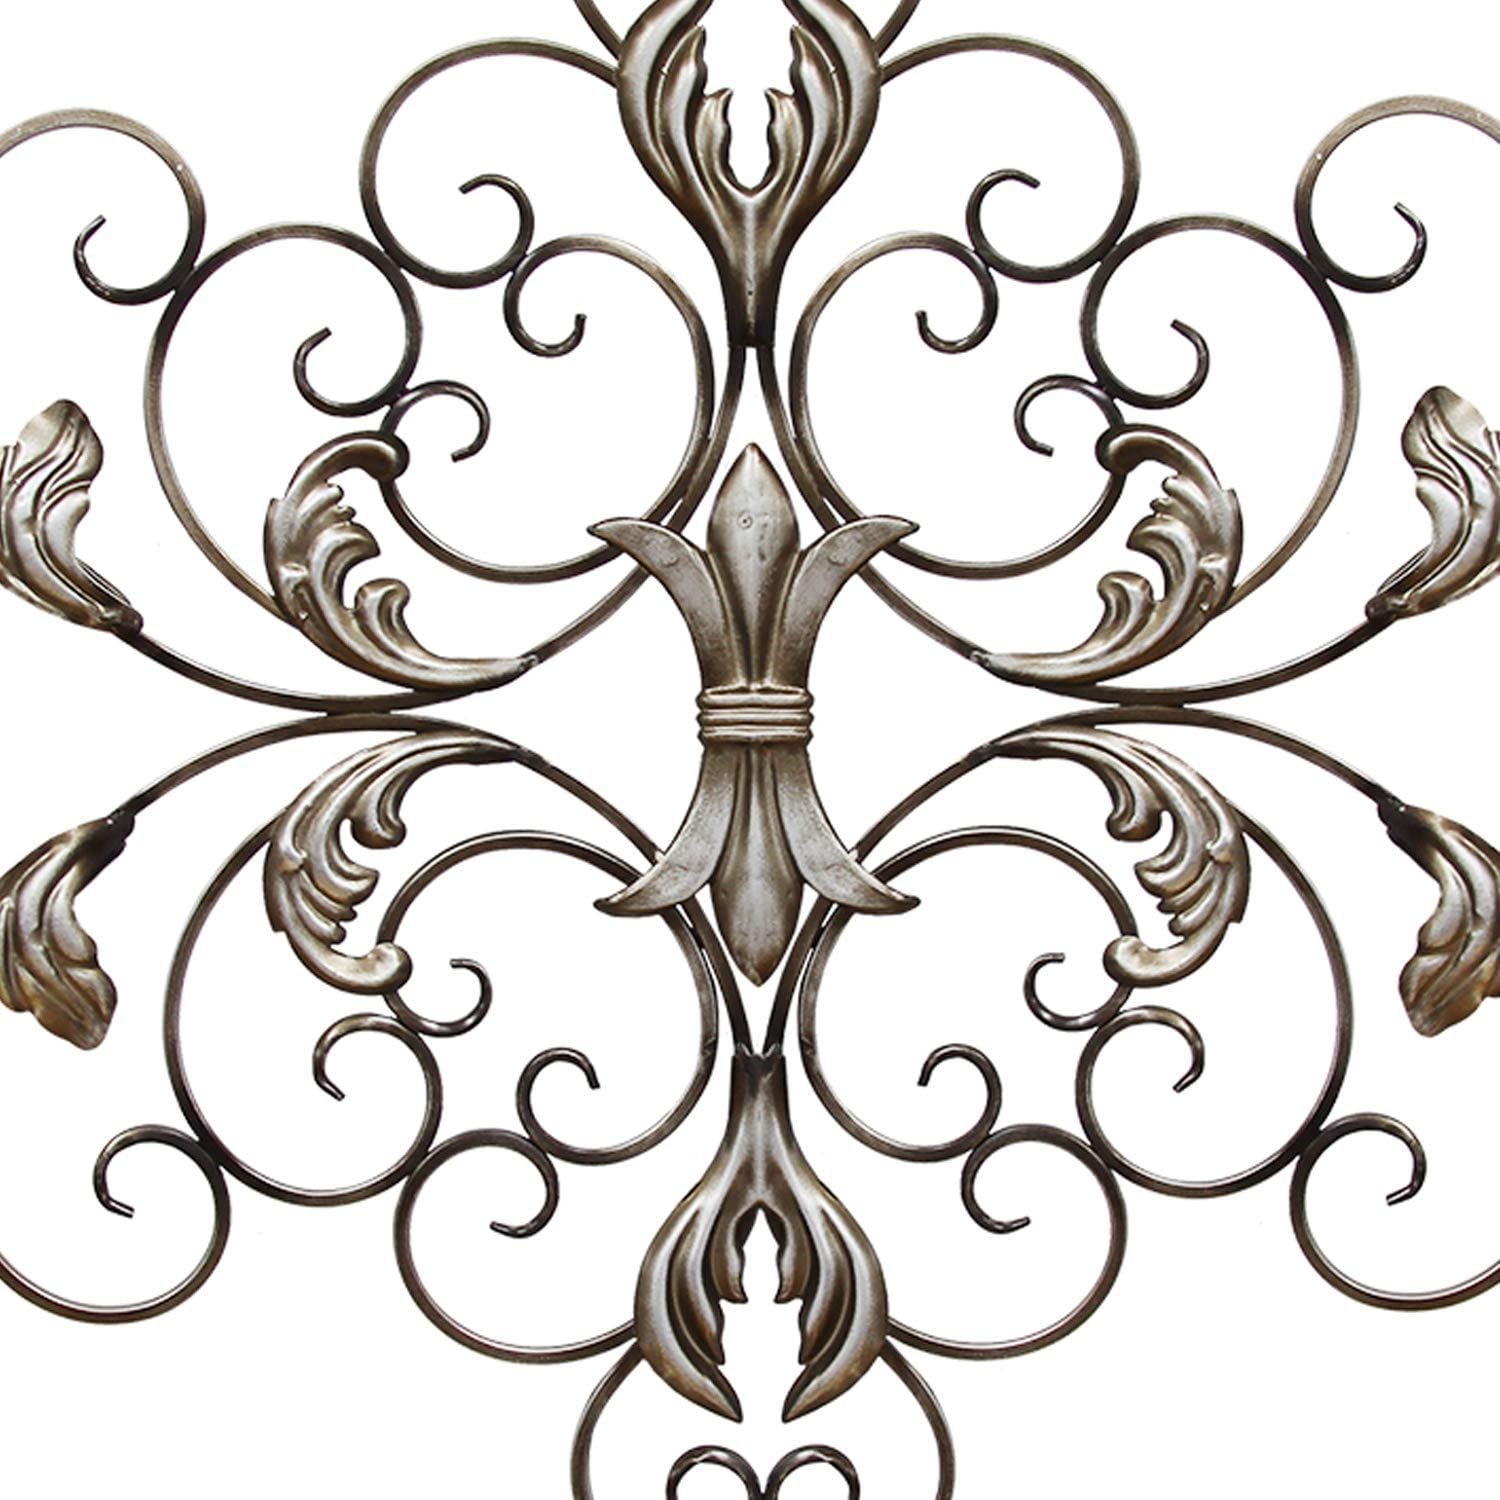 Stratton Home Decor Shd0139 Ornate Scroll Wall Decor Champagne 36 00 W X 0 75 D X 21 75 H Wall Sculptures Home Kitchen